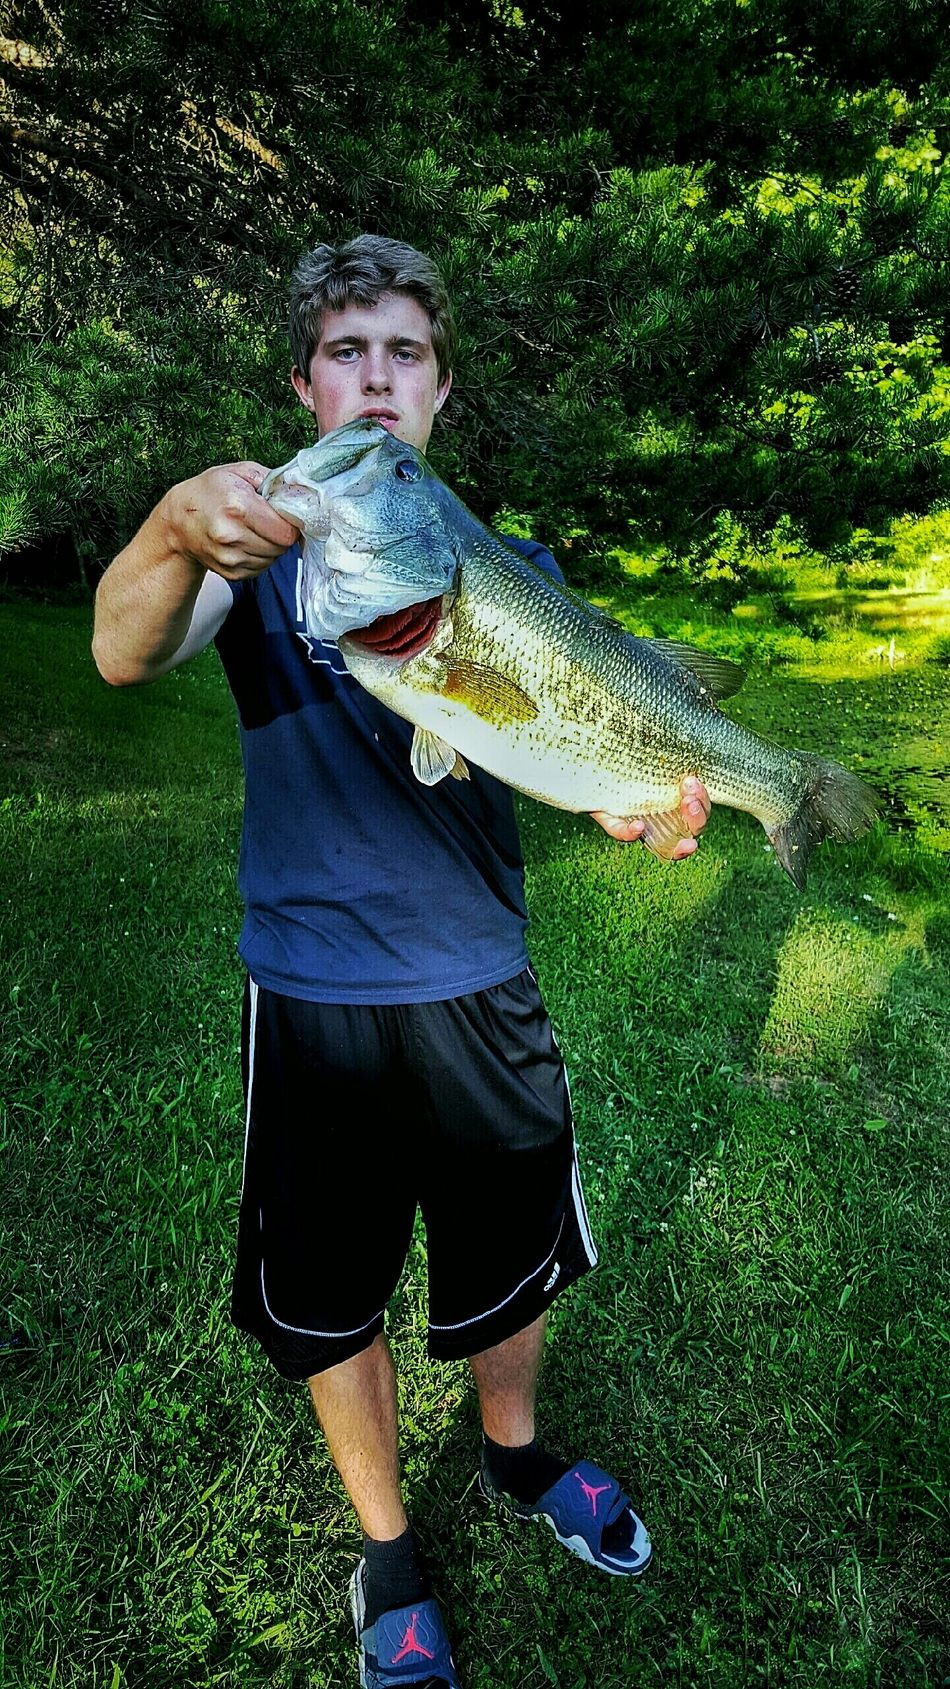 Largemouthbass Bass Fishing Happy Proud Excited Confidence  Pond West Virginia USA Outdoors Outdoorsman Outdoorsports